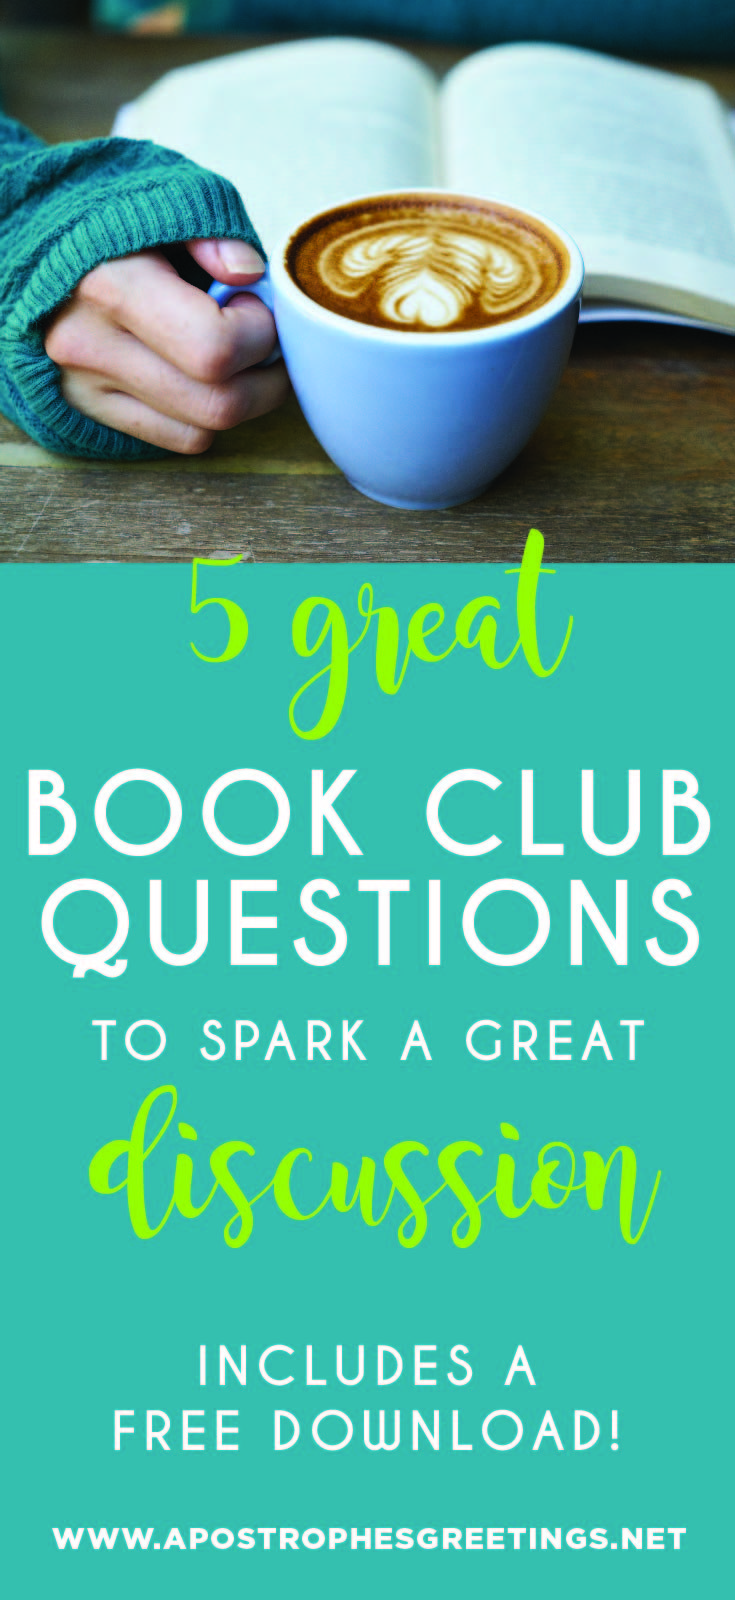 5 Book Club Questions to spark a great discussion